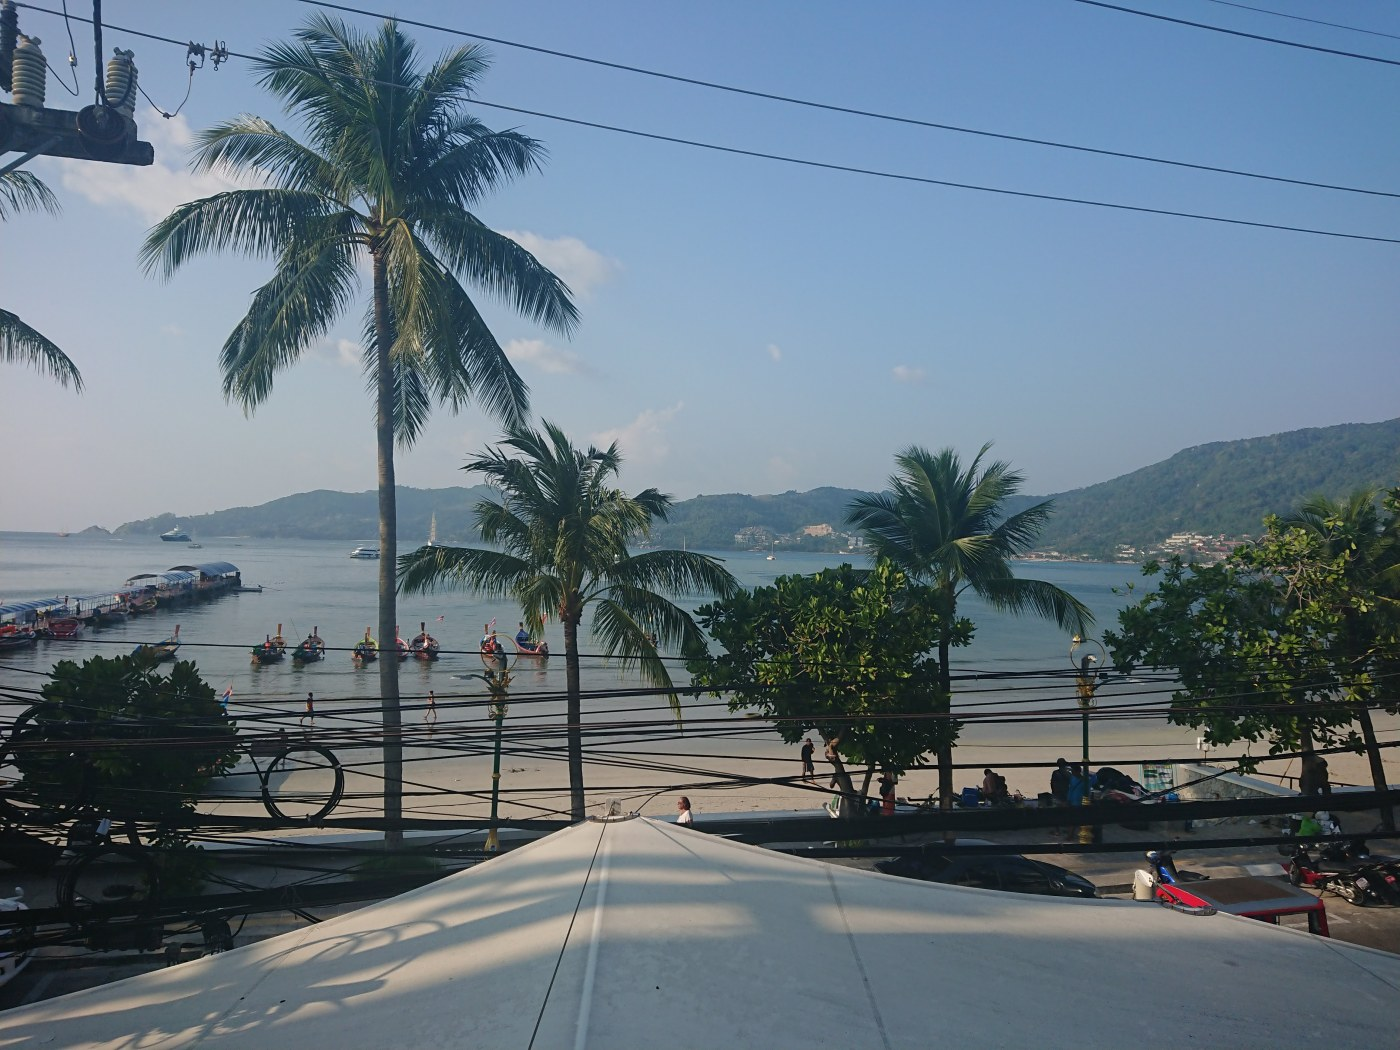 View from our hotel room, Baan Boa, Phuket